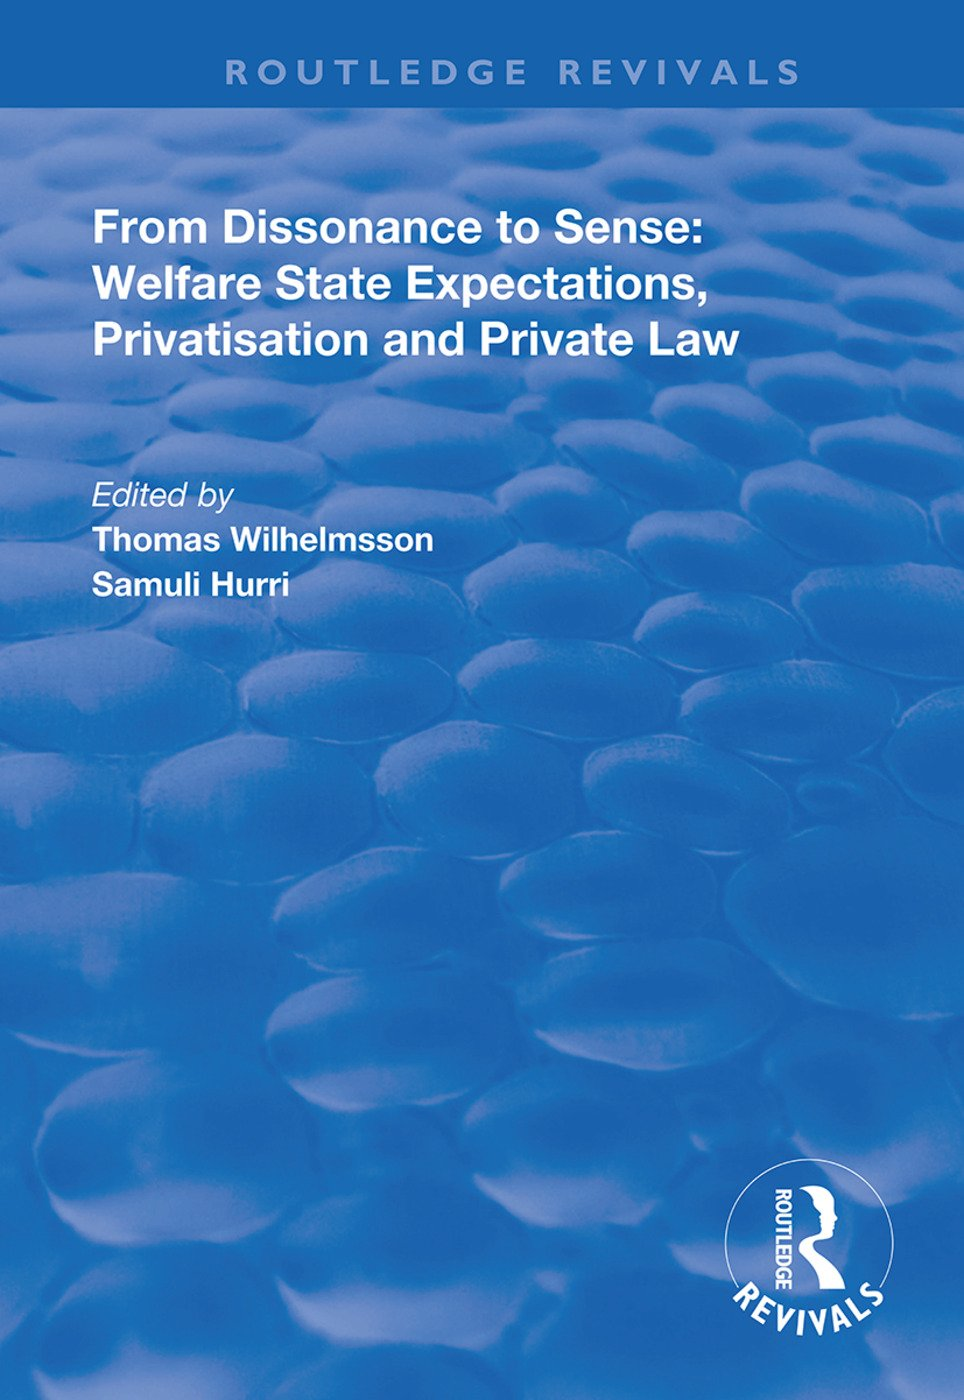 From Dissonance to Sense: Welfare State Expectations, Privatisation and Private Law book cover